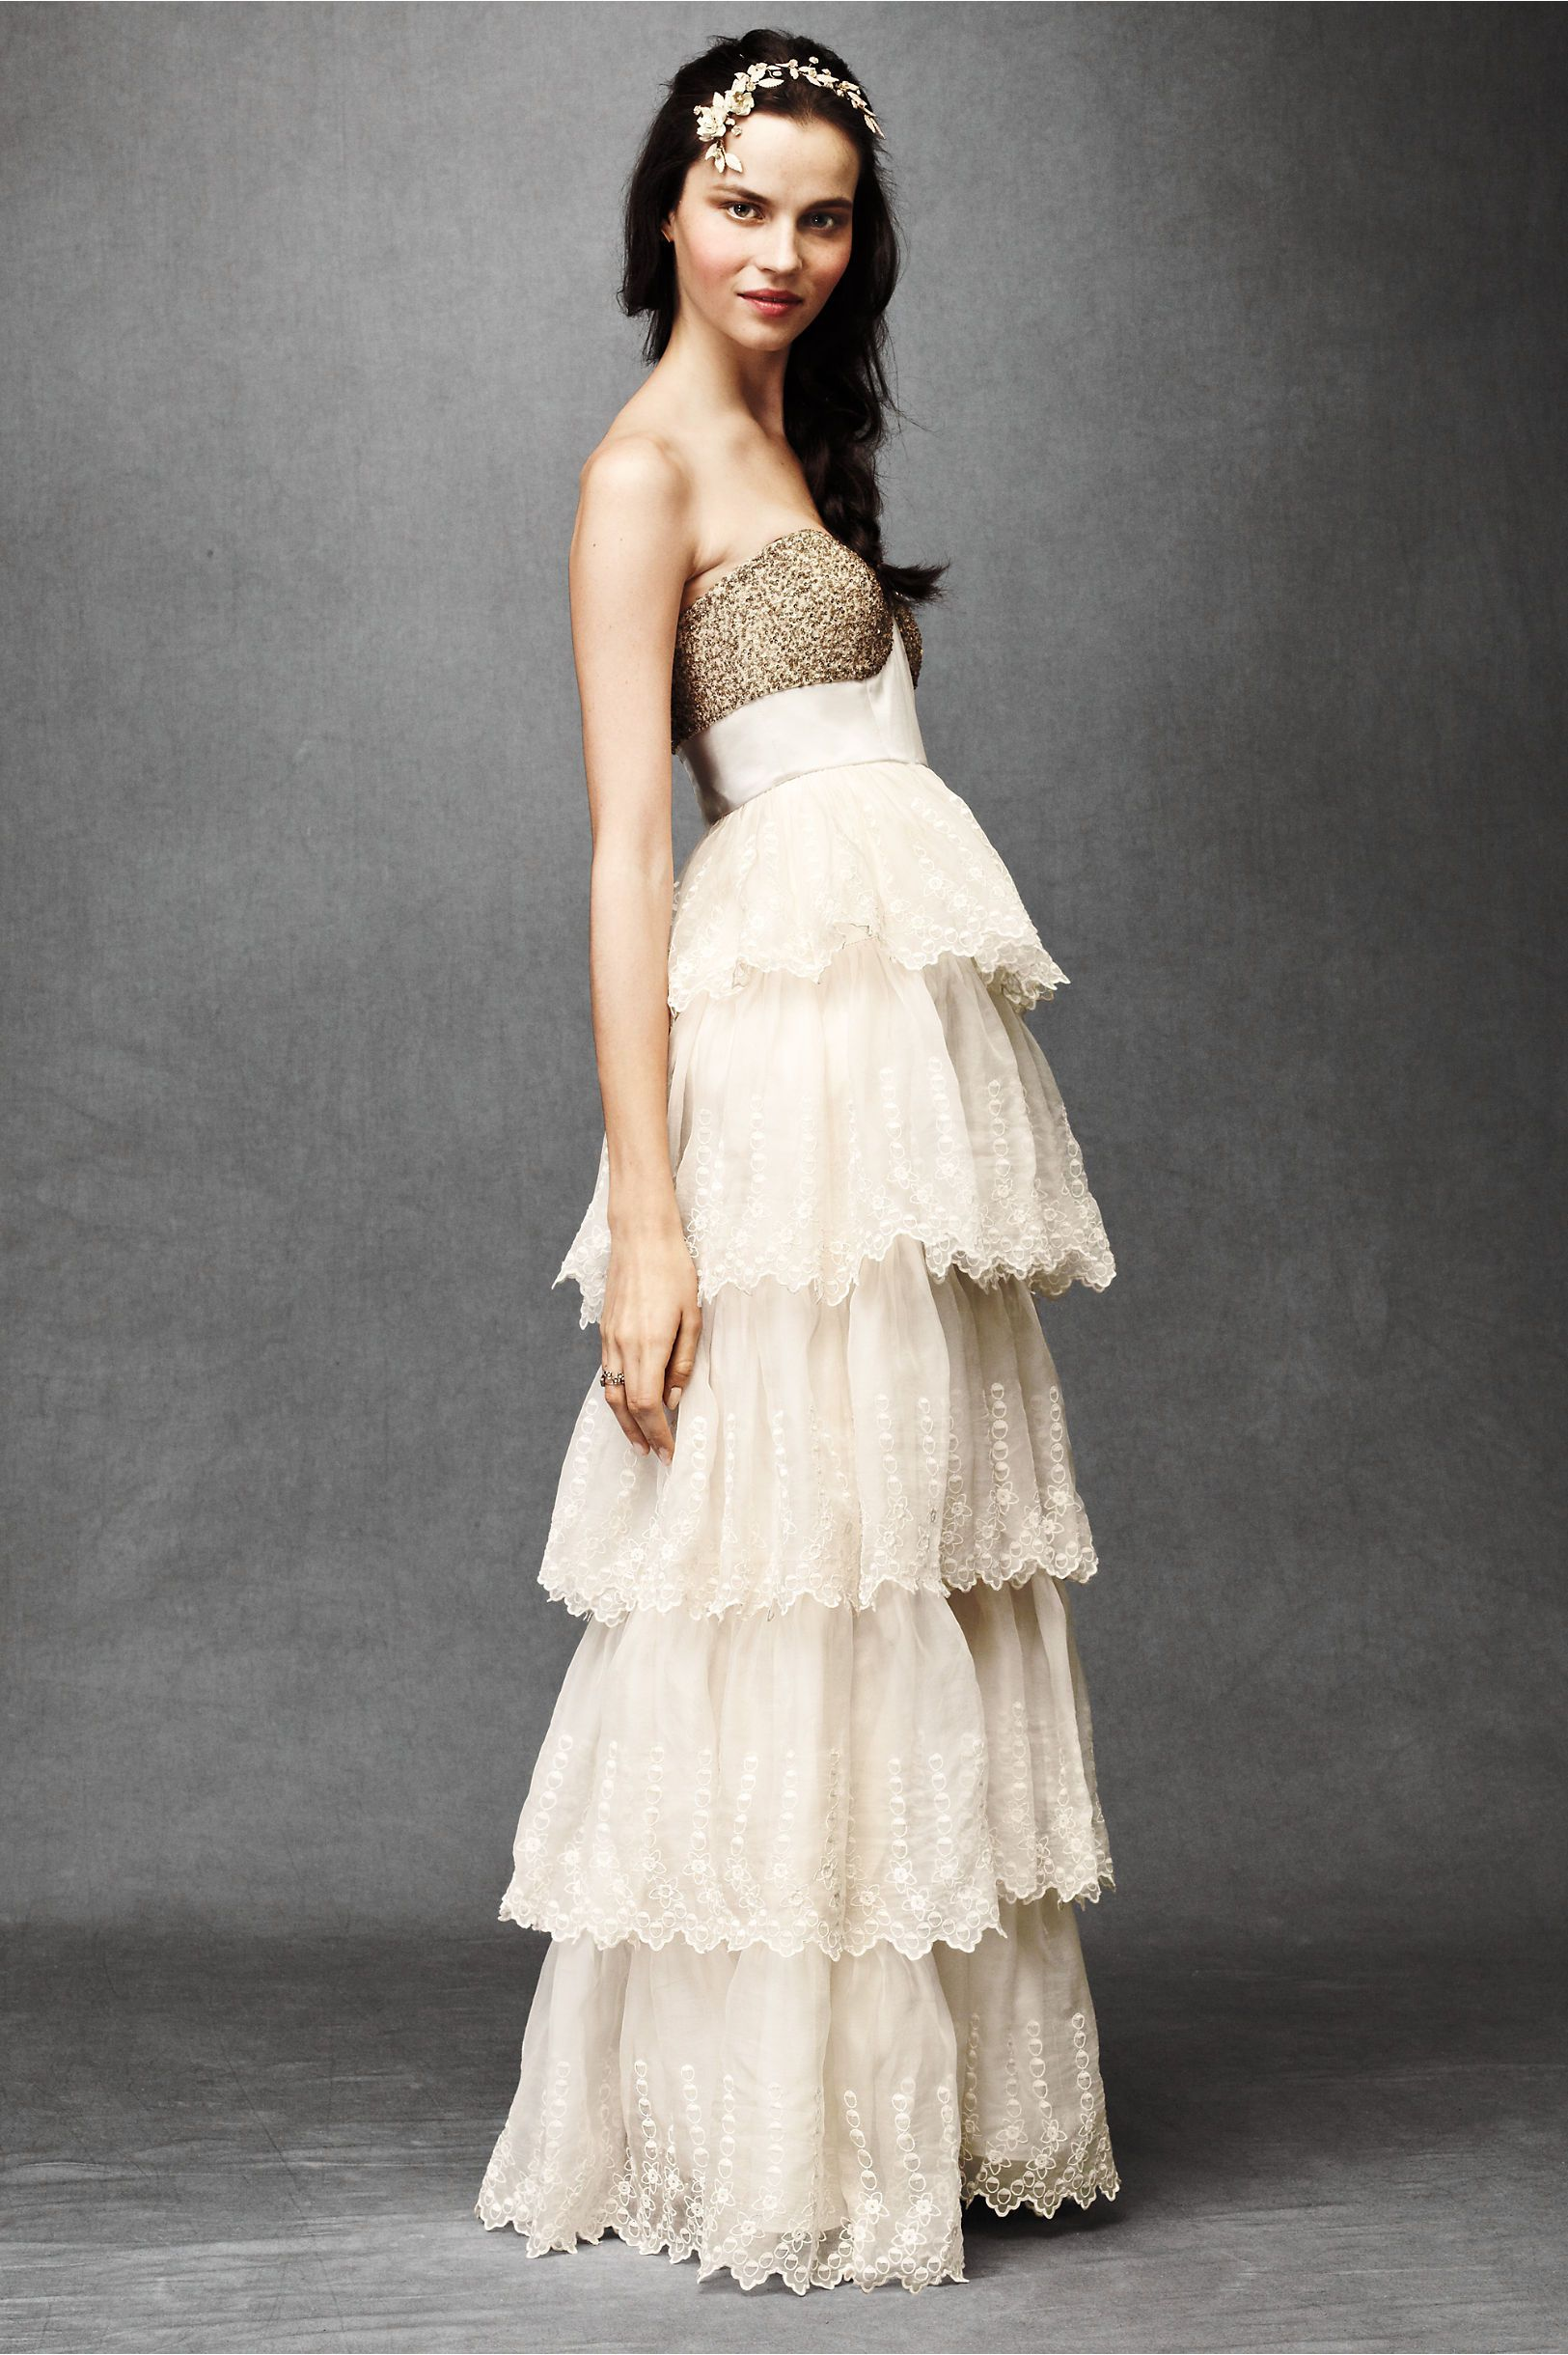 Burnished Organza Gown From Bhldn If This Had Some Kind Of Straps It Would Be Practically Perfect: Practically Perfect Wedding Dress At Websimilar.org